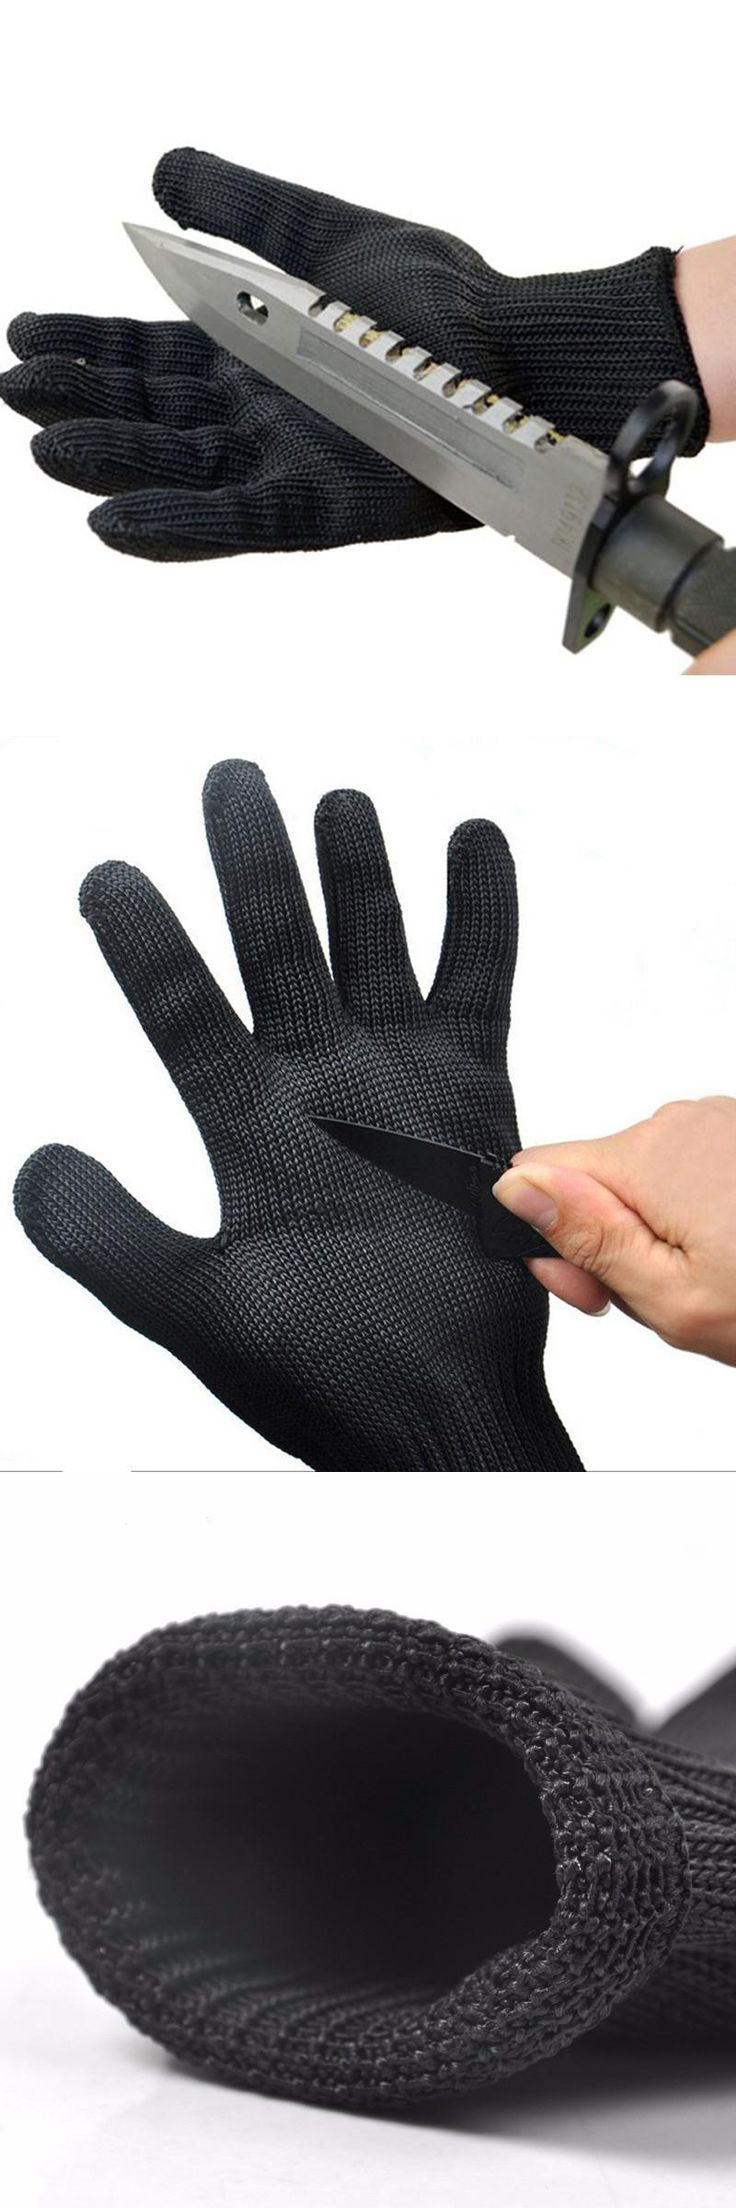 [Visit to Buy] 1Pcs Anti-cut Anti-slip Outdoor Hunting Fishing Glove Cut Resistant Protective Hand Protection Mesh Glove #Advertisement